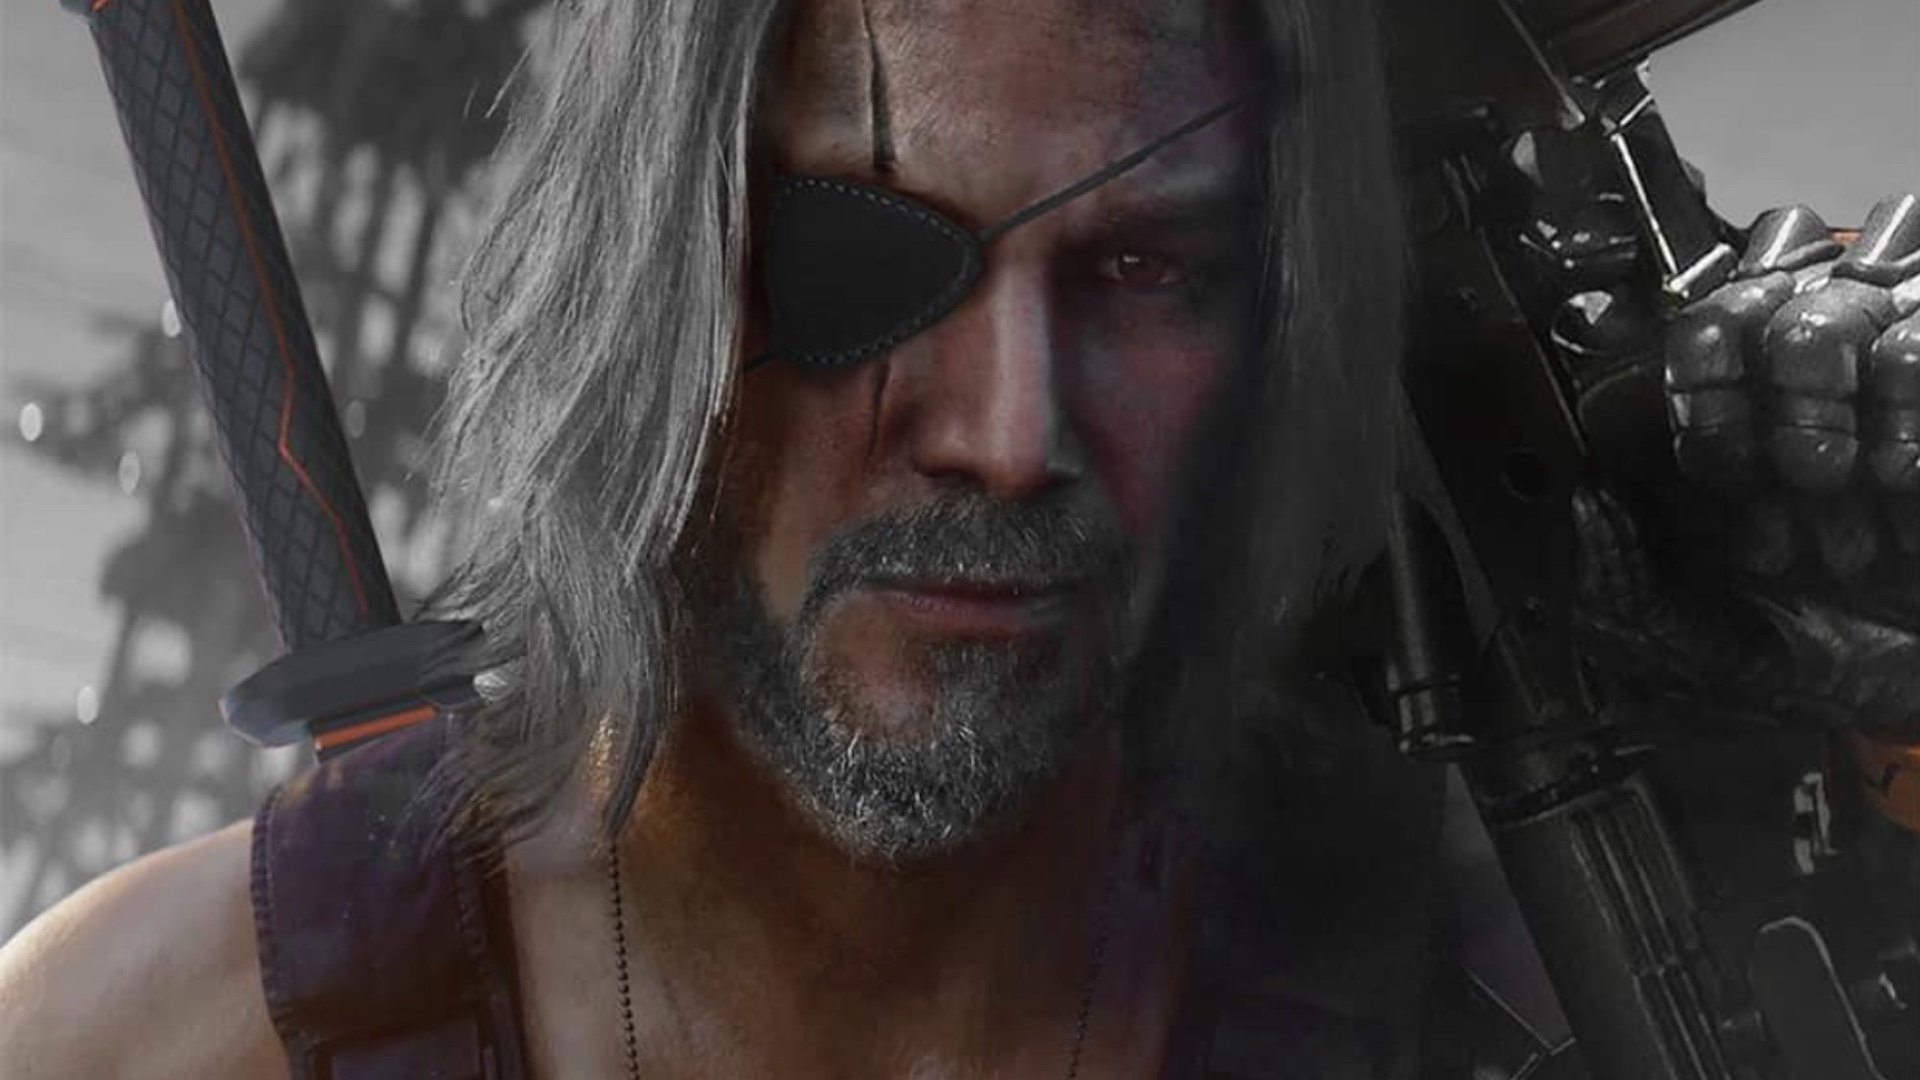 fan-art-shows-what-keanu-reeves-would-look-like-as-deathstroke-social.jpg